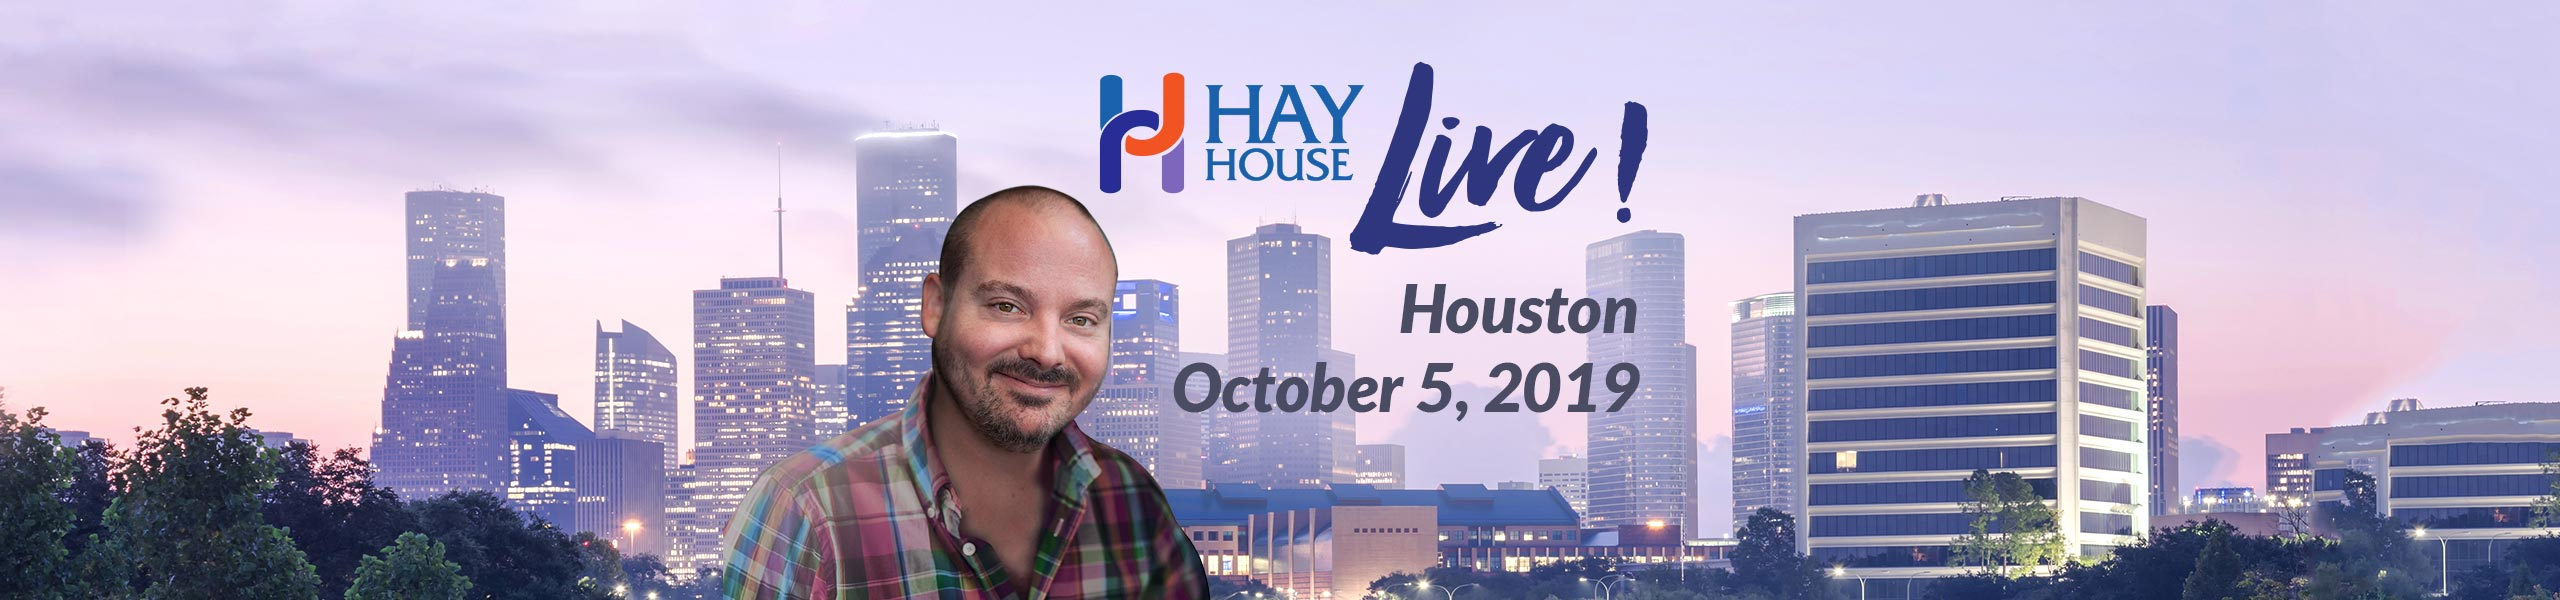 Hay House Live! Houston 2019 - Matt Kahn